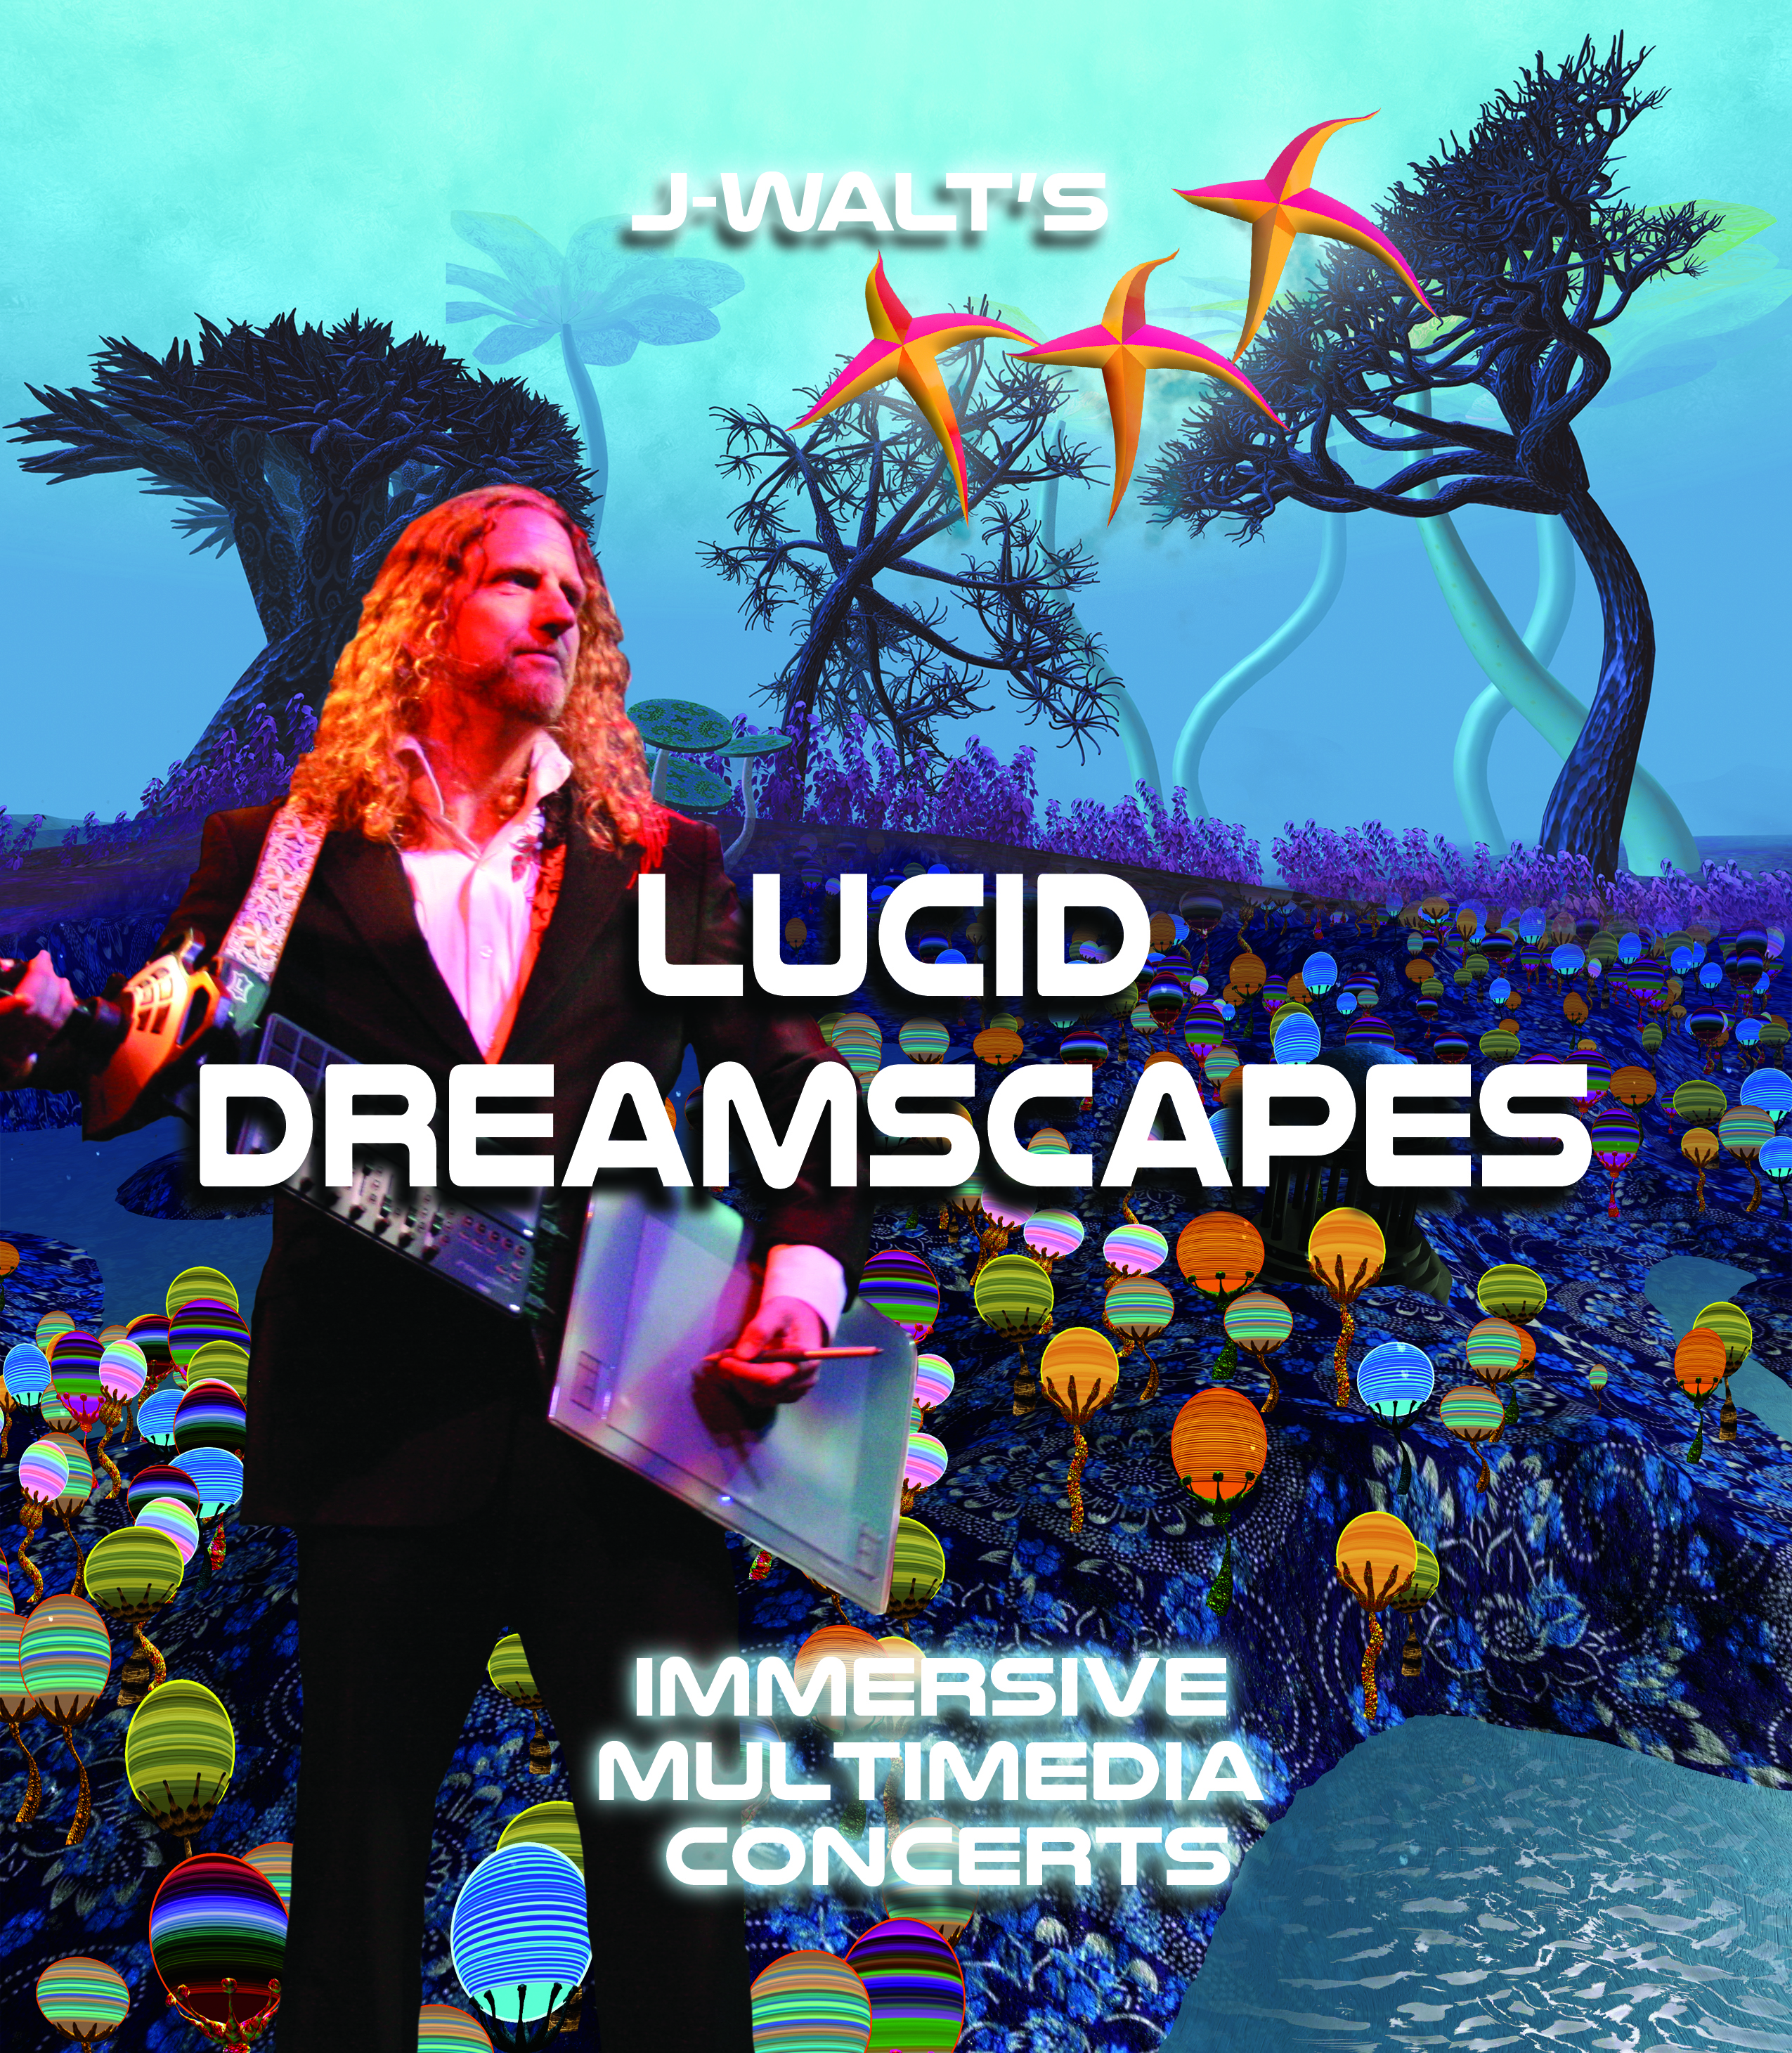 Lucid_Dreamscapes_Anitar